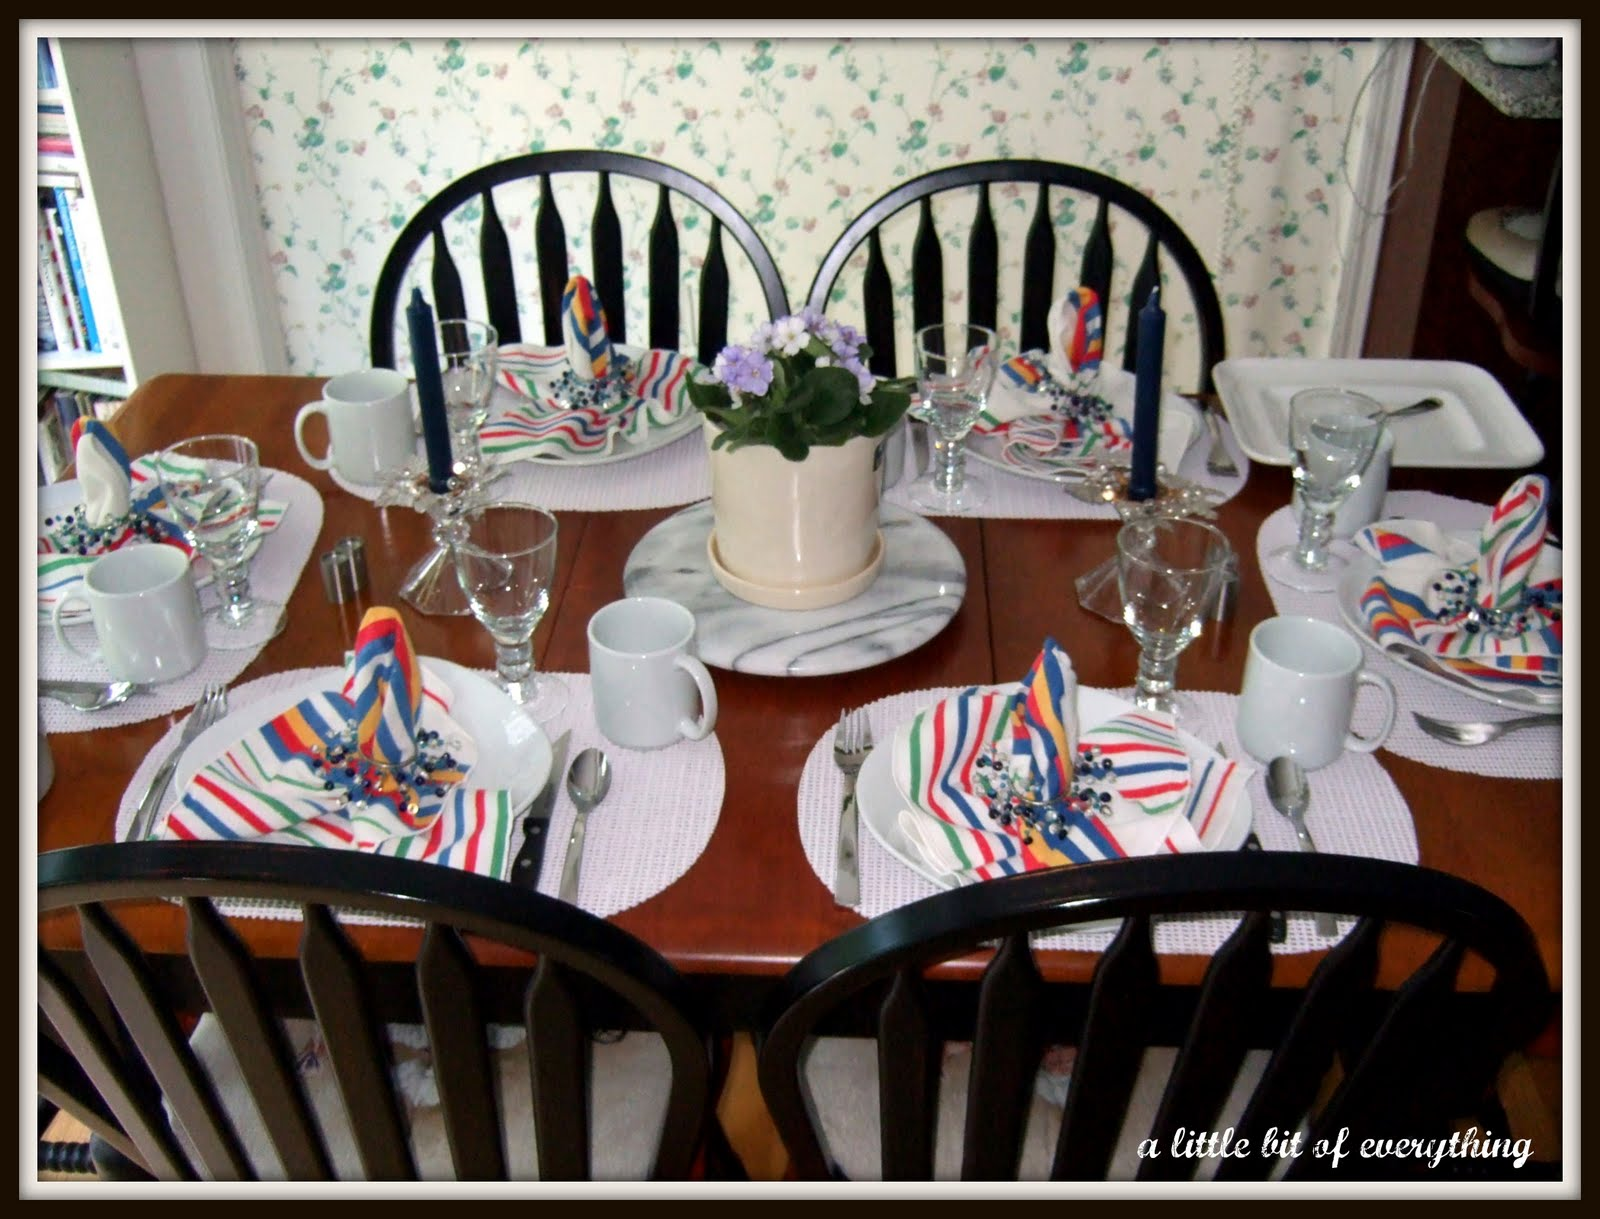 Dinner table setting table decorations for father s day view